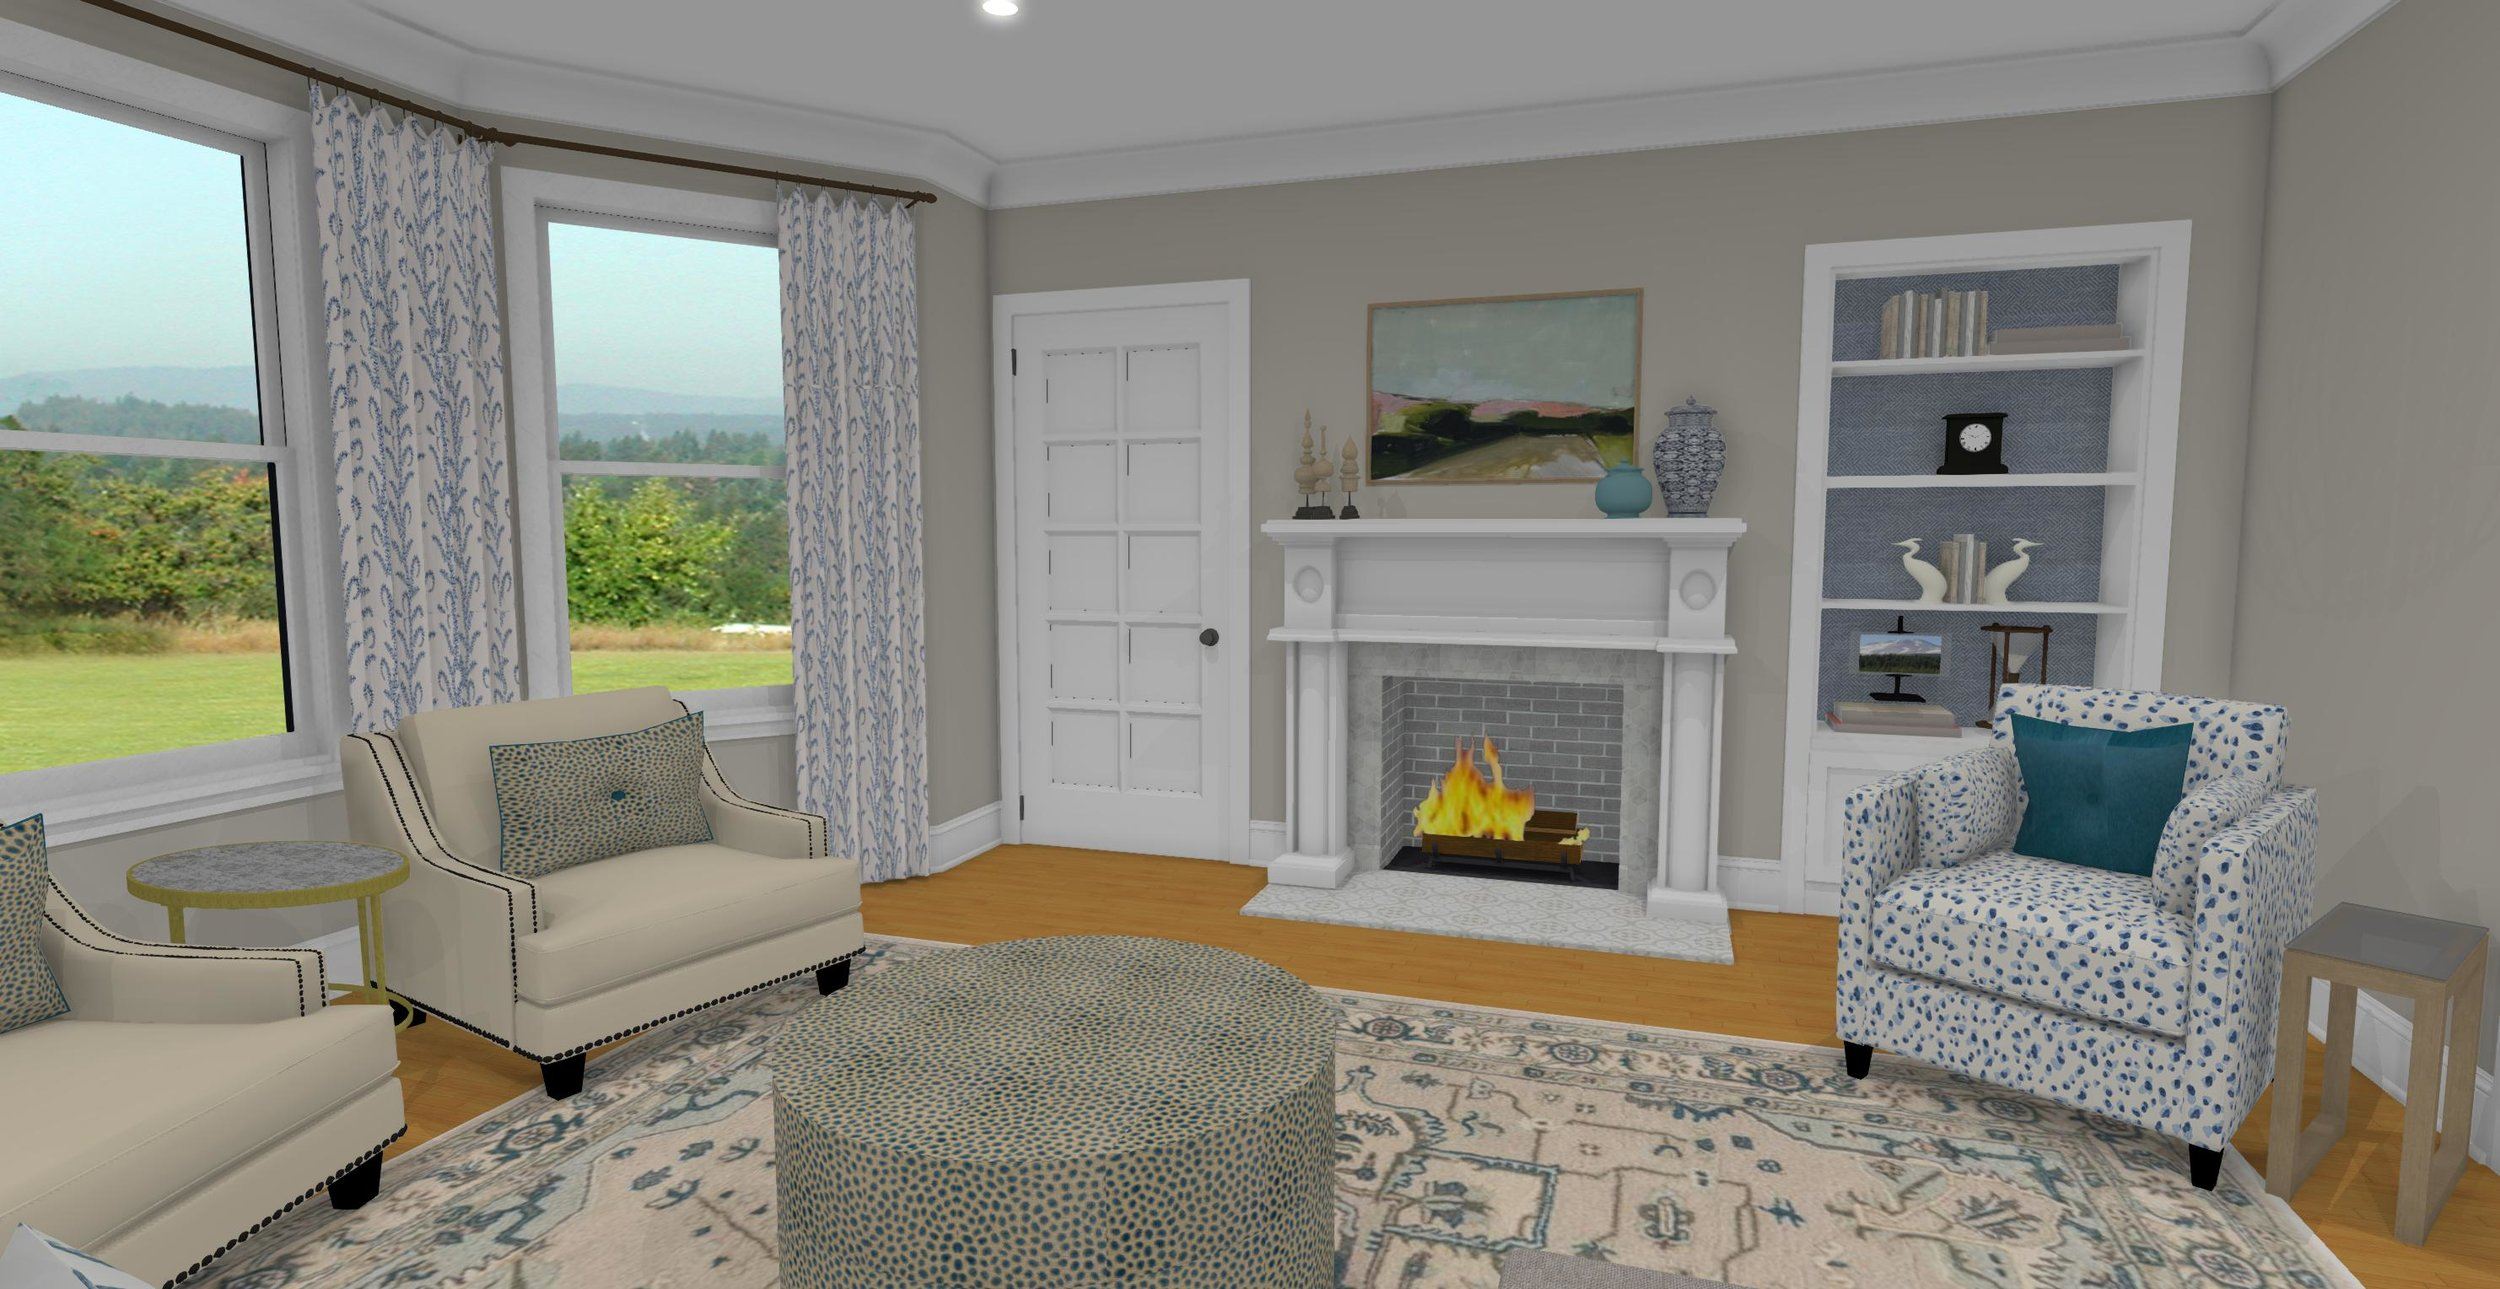 View towards Fireplace from Sectional